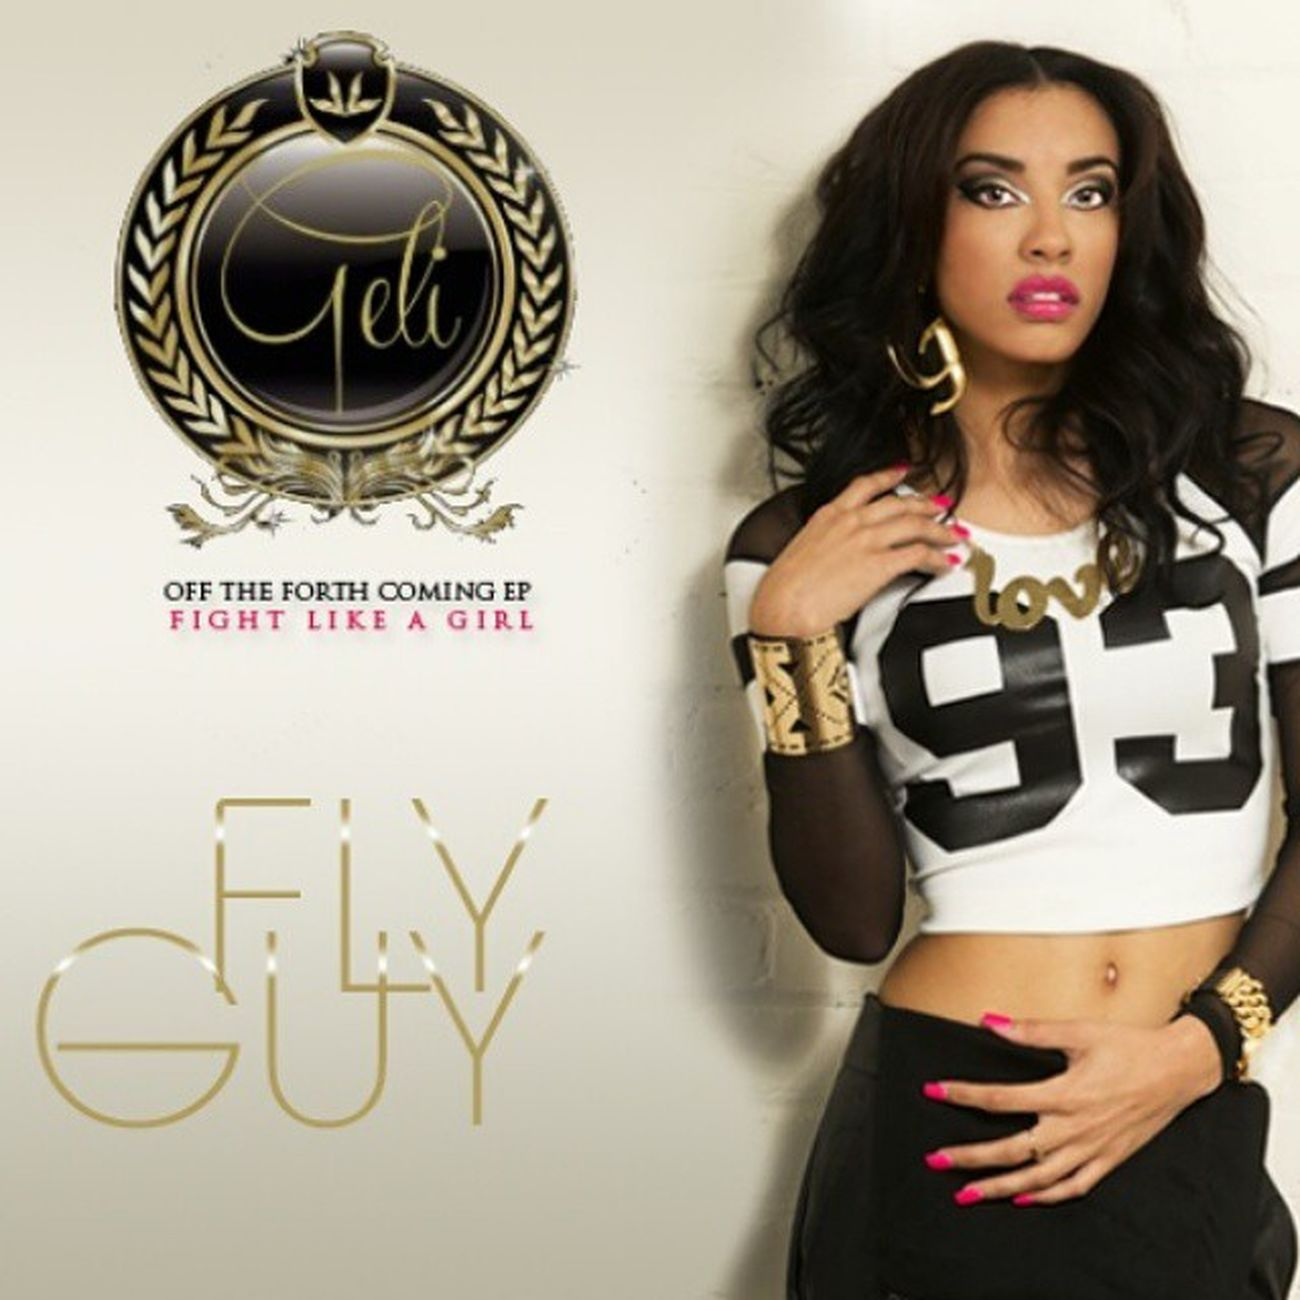 "Hey Beauties! This ya girl Geli. Keep a look out for my official single Fly Guy Off my EP ""Fight Like a Girl"" . It's dropping at the top of the year of 2015.You DON'T want to miss it! Also keep a look out for the official FLY GUY music video, coming soon to screens near you. Missoddbeauty FlyGuy OfficialSingle 2014 < 2015 MusicVideo ComingSoon Bangaville Followthemovement"